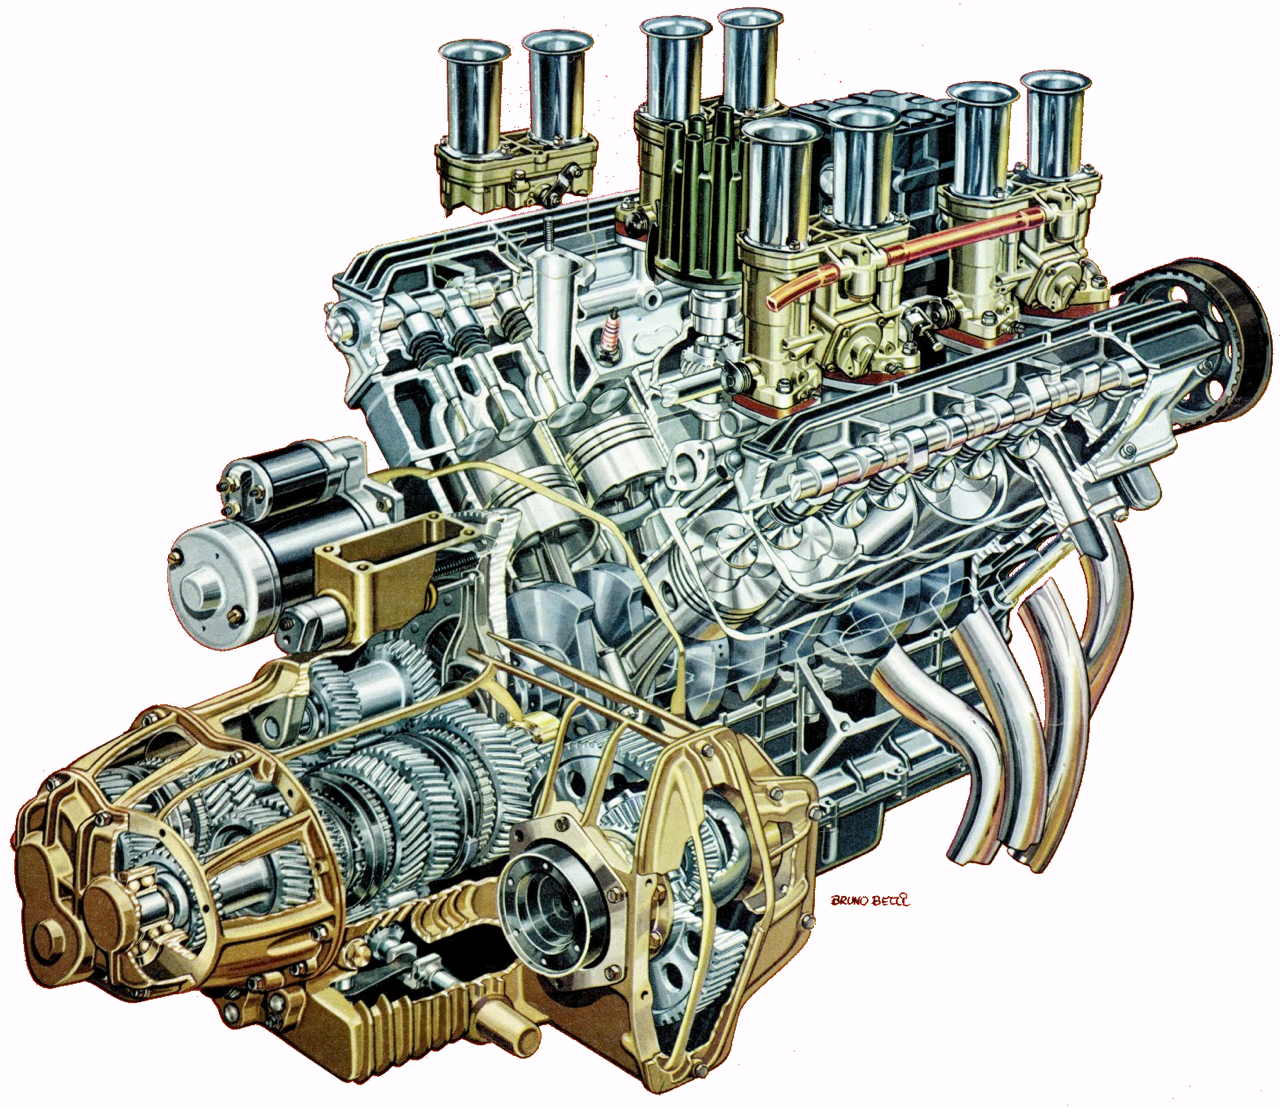 V8 Engine Drawing At Free For Personal Use 1954 Chrysler Wiring Diagram 1280x1107 Cutaway Illustration Race Engines Amp Cutaways